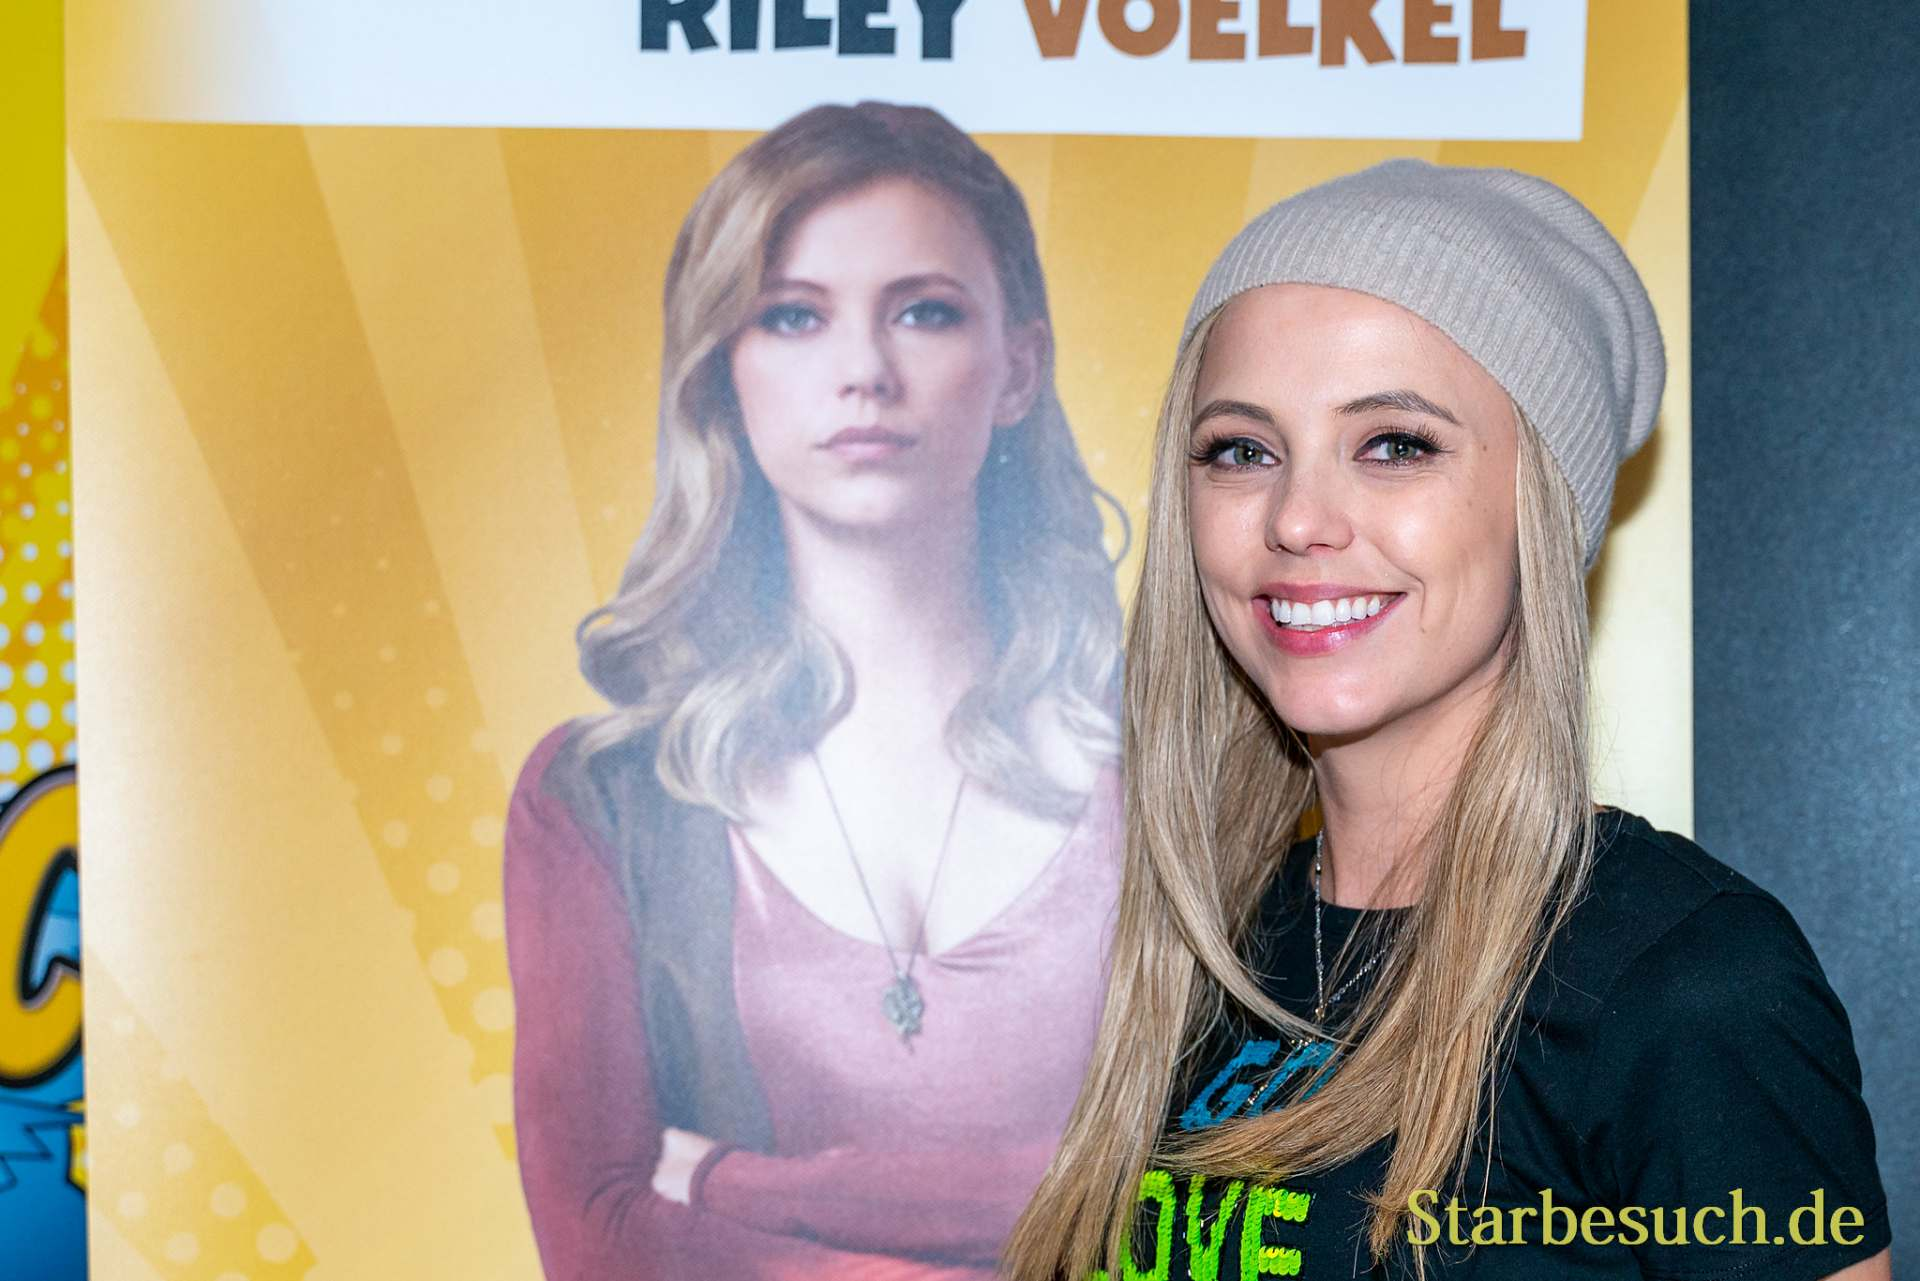 DORTMUND, GERMANY - December 8th 2019: Riley Voelkel at German Comic Con Dortmund